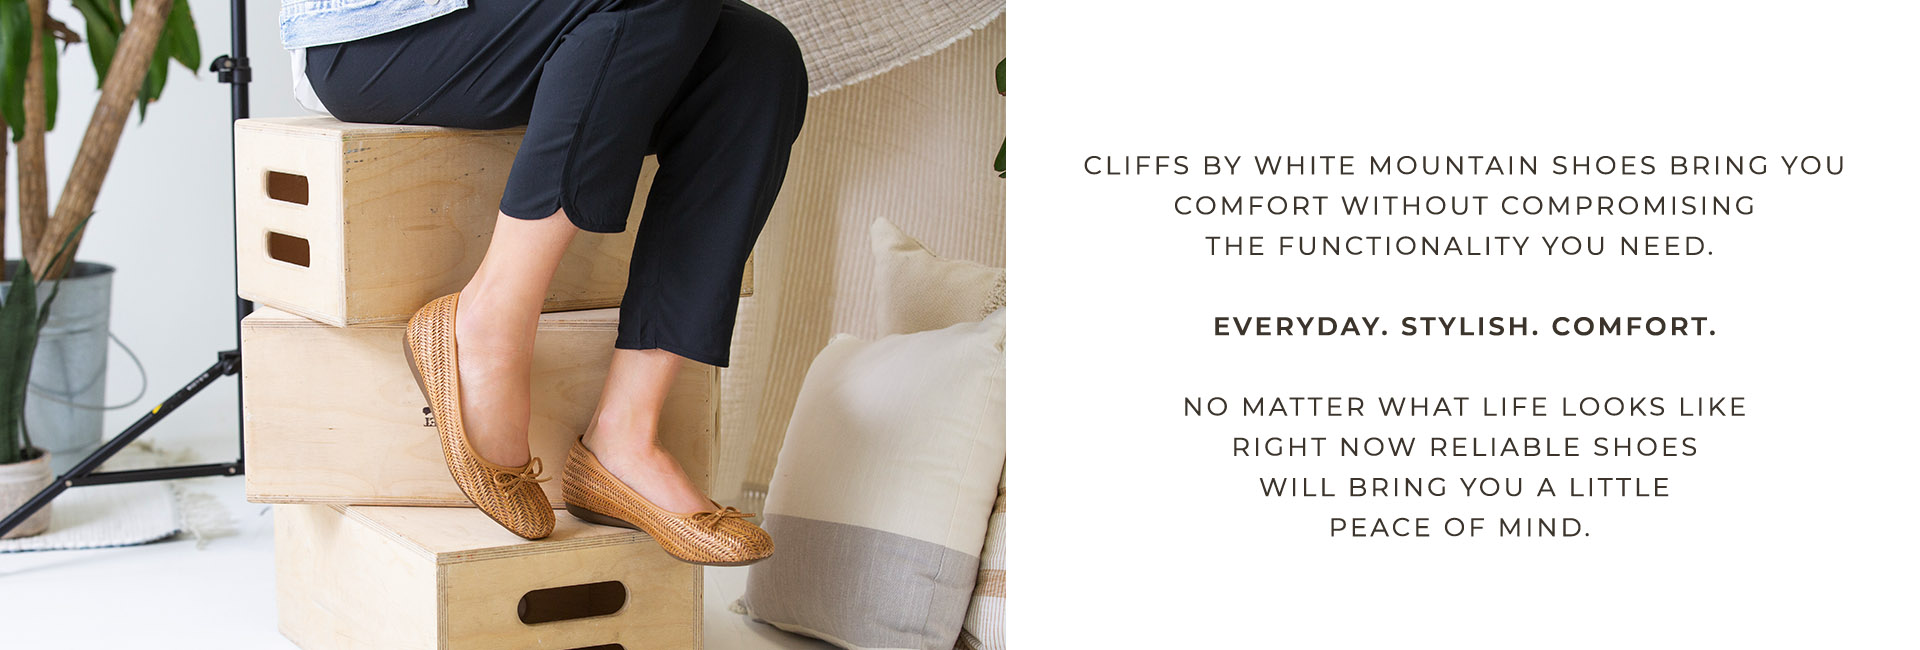 CLIFFS by White Mountain Shoes brings comfort without compromising the functionality you need. Everyday. Stylish. Comfort. No matter what life looks like right now reliable shoes will bring you a little peace of mind.